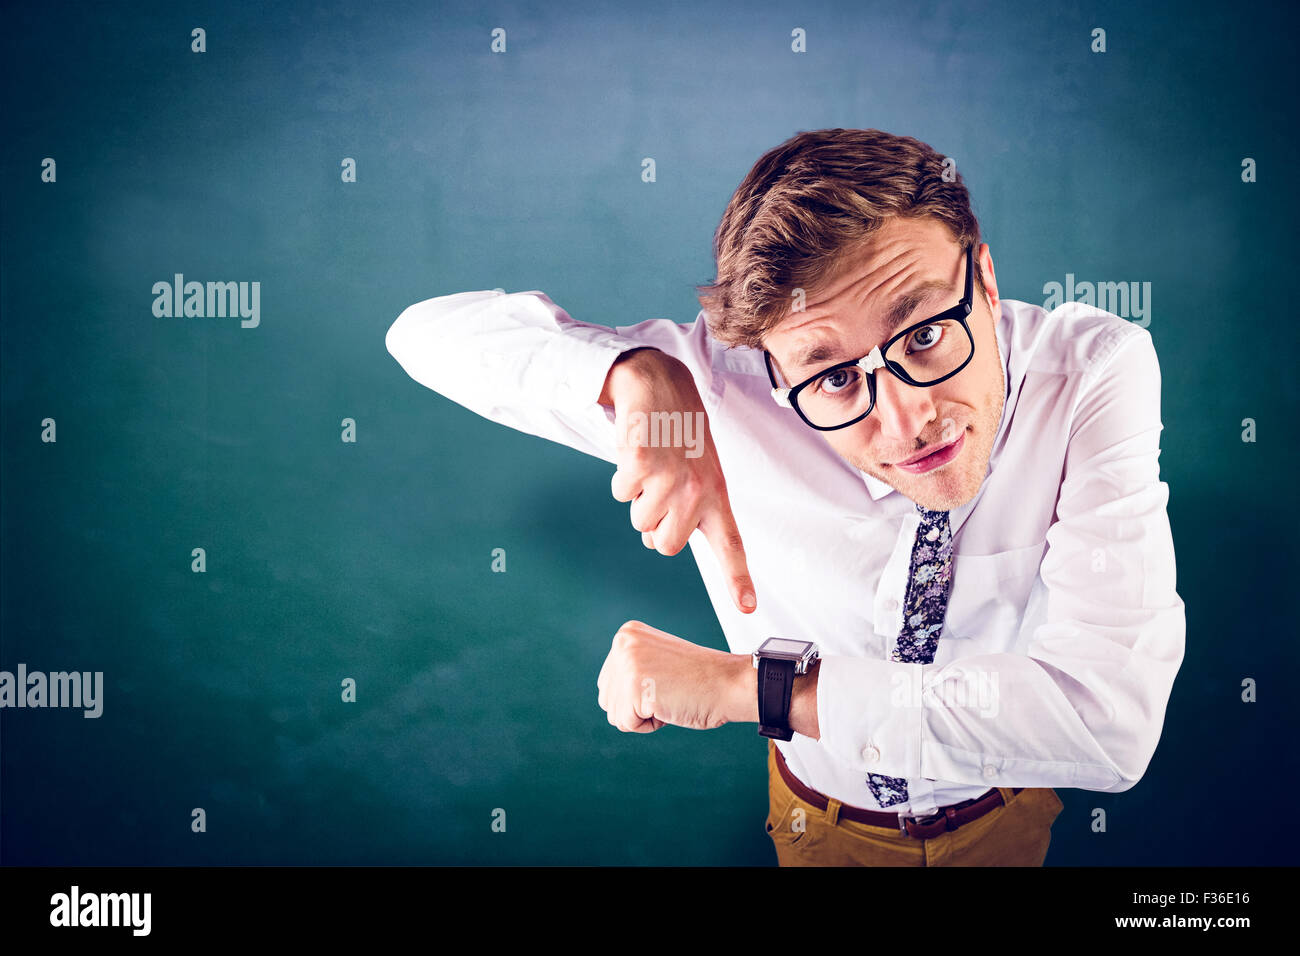 Composite image of geeky businessman pointing to watch - Stock Image